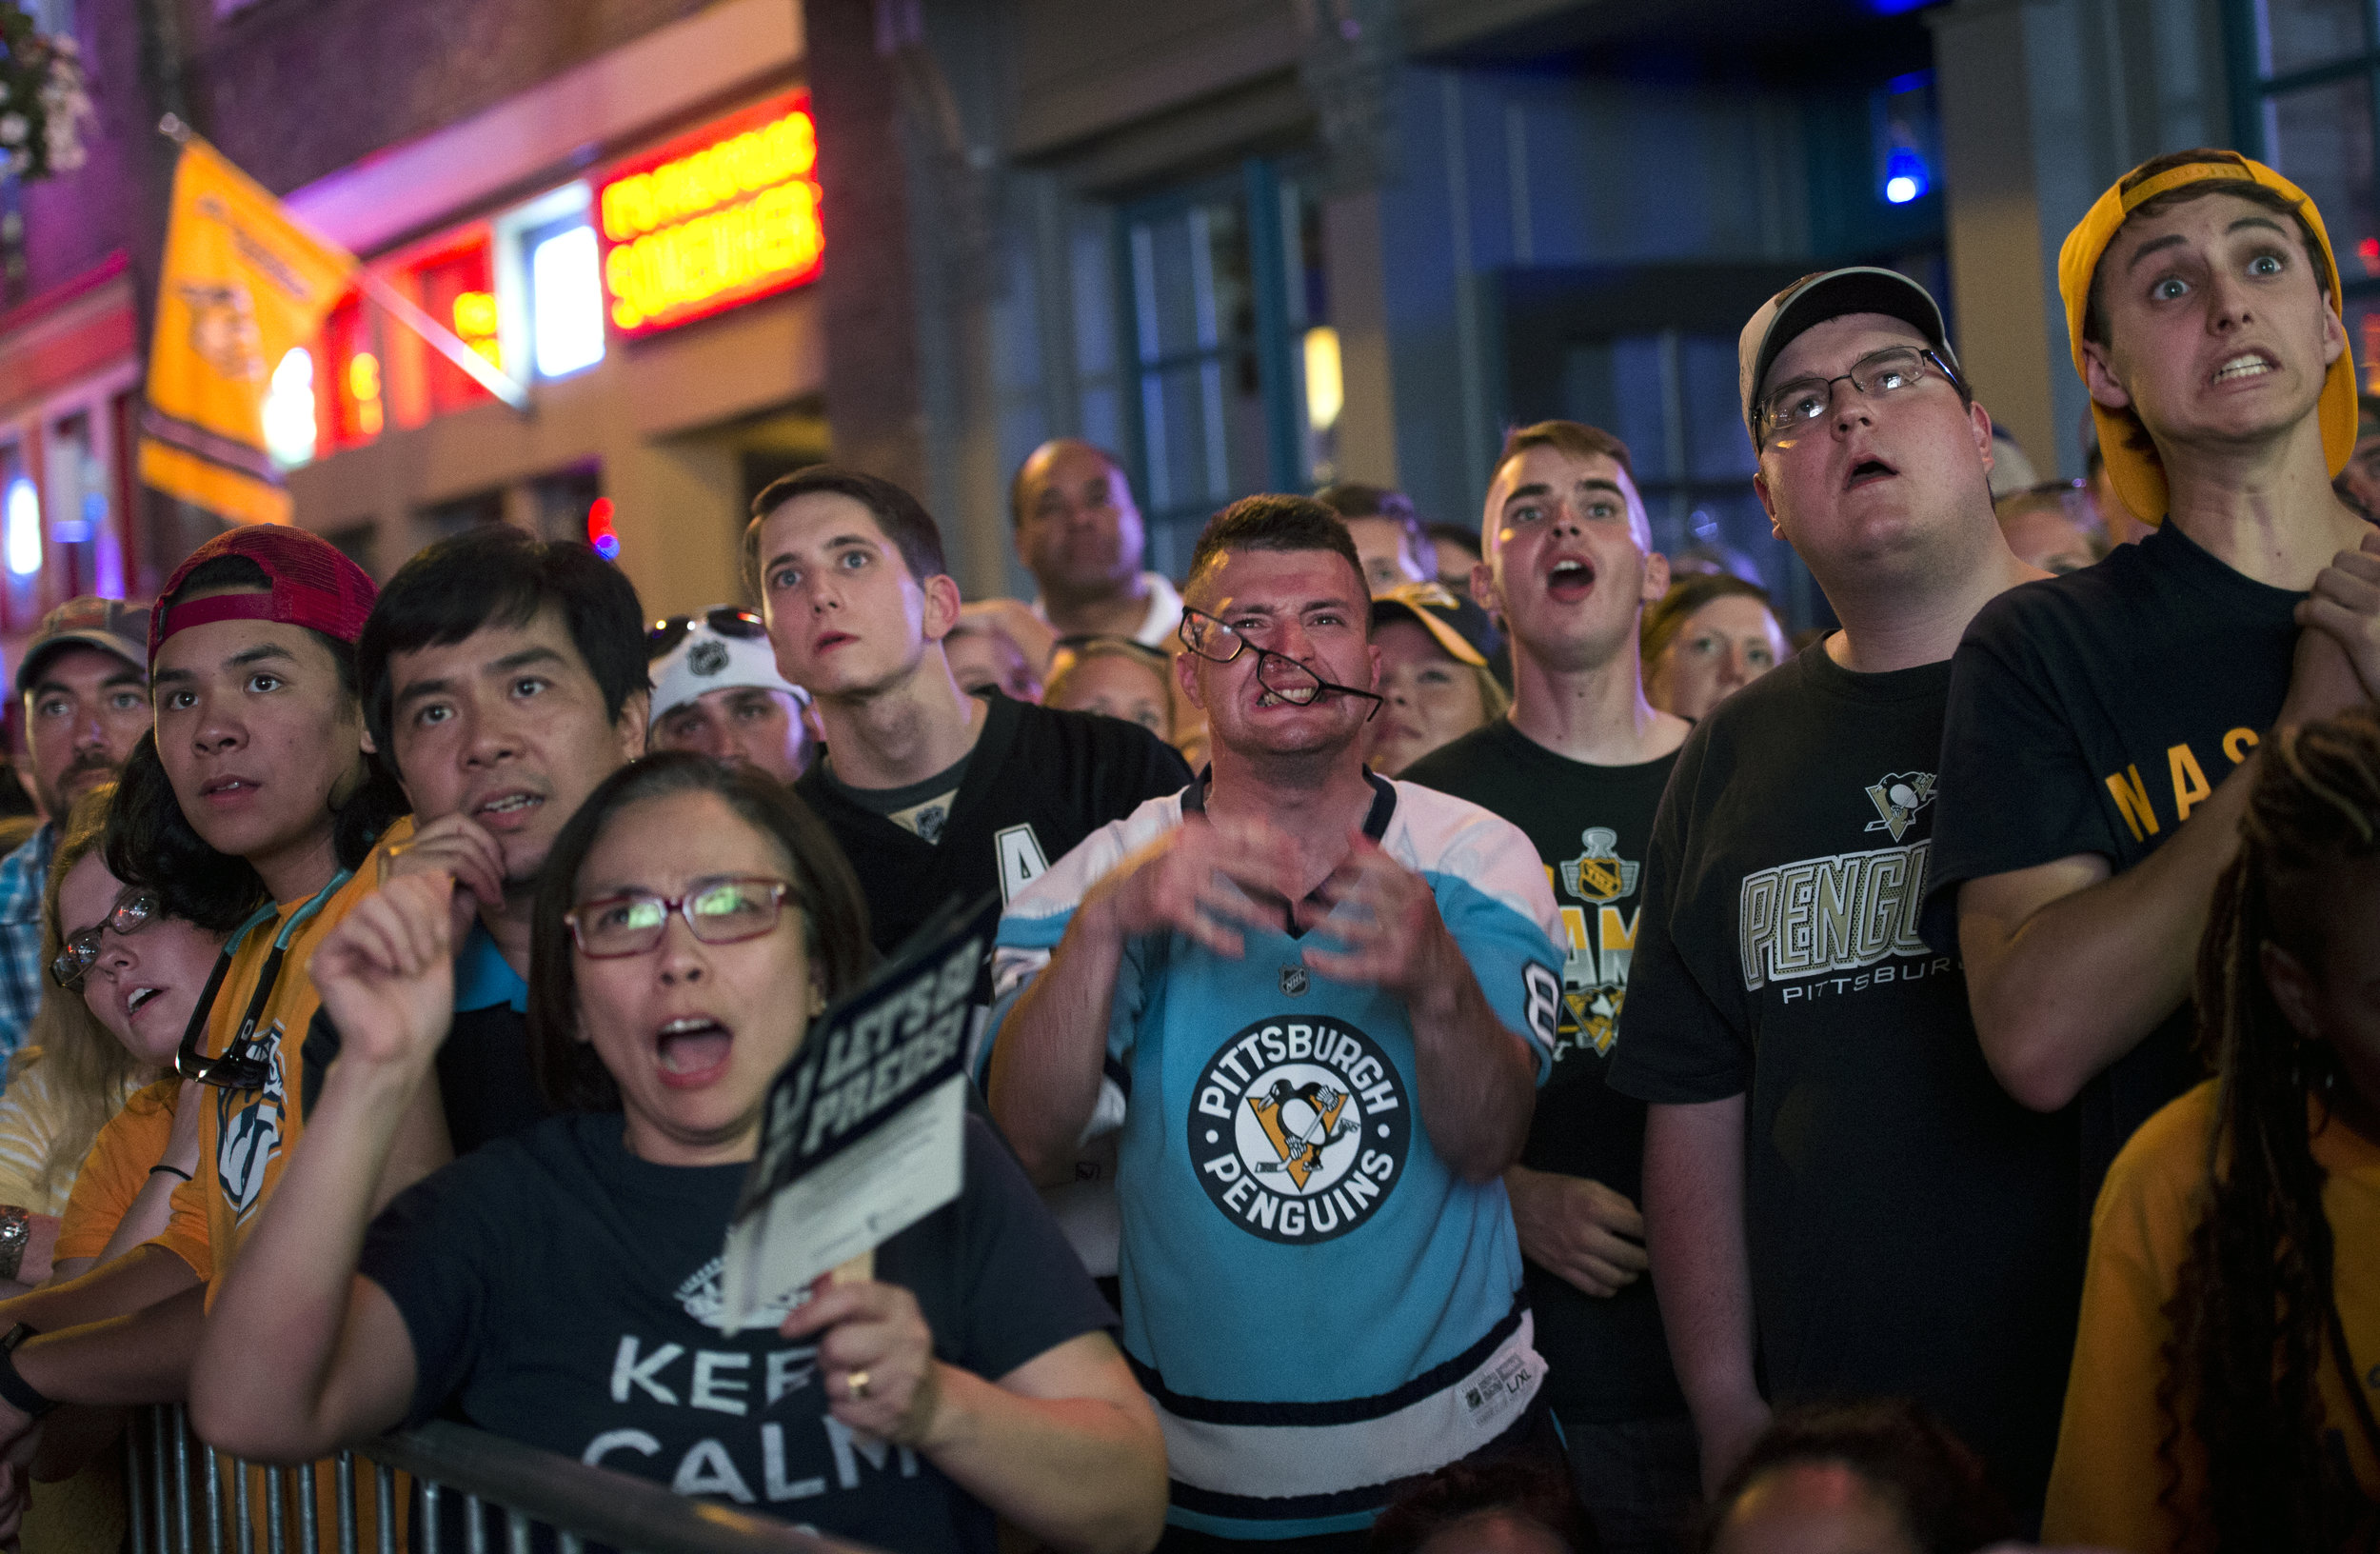 Eyeglasses fly off the face of Matt Jenkins Castro from Pittsburgh as he reacts to a scoring opportunity against the Nashville Predators during a screening of game 3 of the Stanley Cup Final on Saturday, June 3, 2017 along Broadway in Nashville. (Steph Chambers/Post-Gazette)